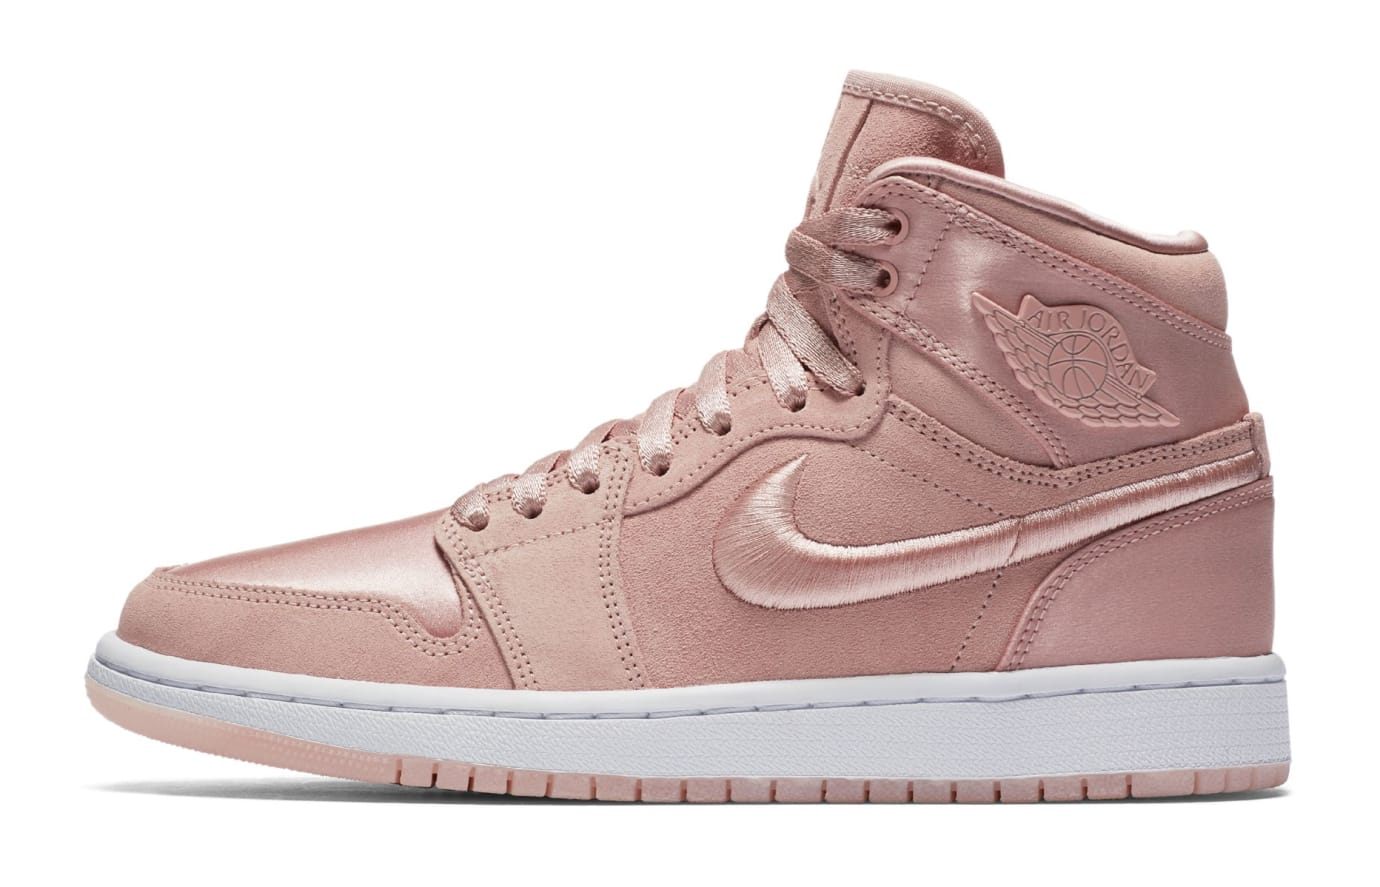 Air Jordan 1 Summer of High 'Sunset Tint' Sunset Tint/White-Metallic Gold (Lateral)